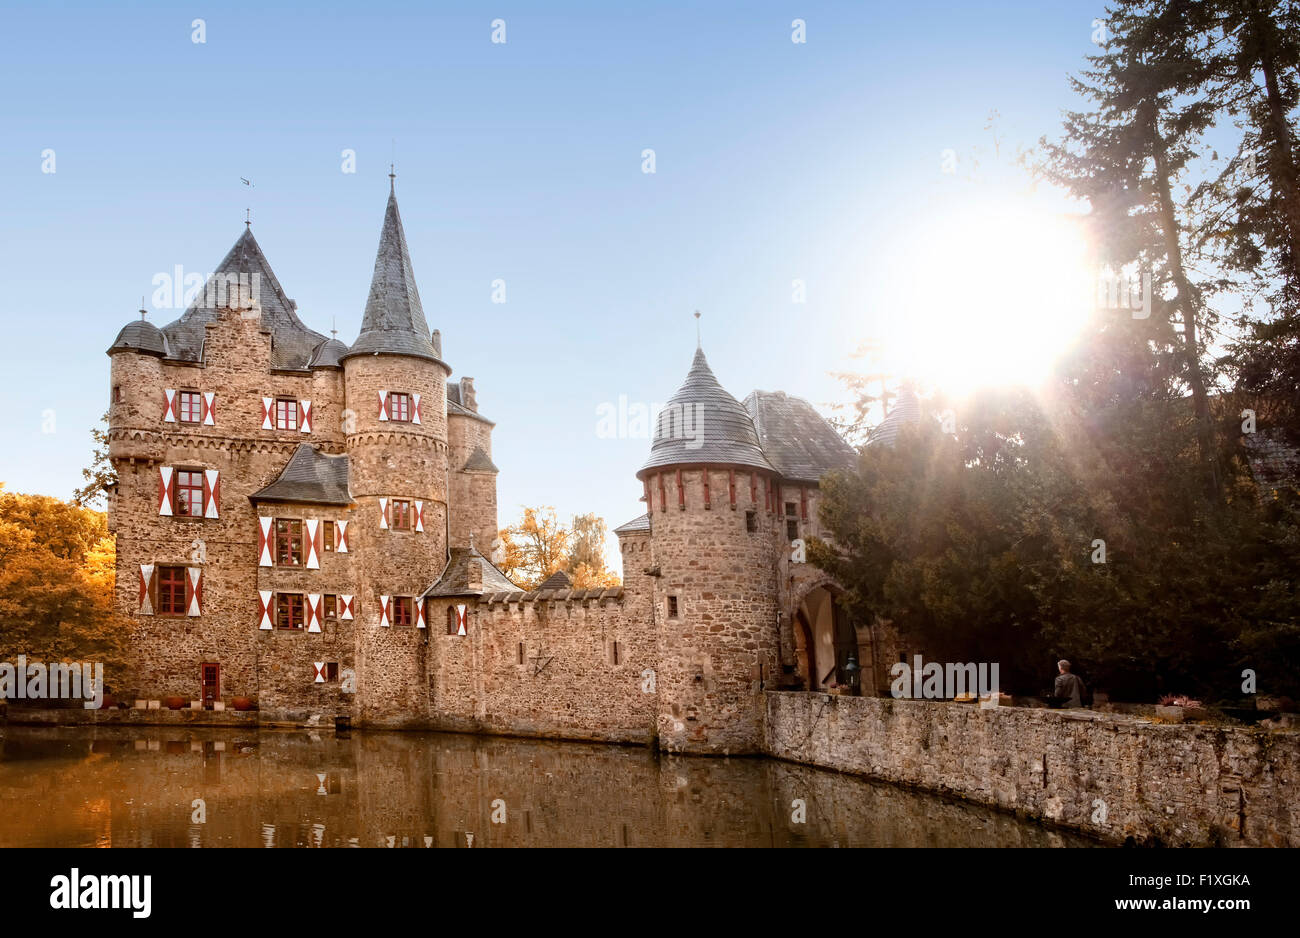 Burg Satzvey, a medieval moated castle, Mechernich, North Rhine-Westphalia, Germany, Europe, - Stock Image